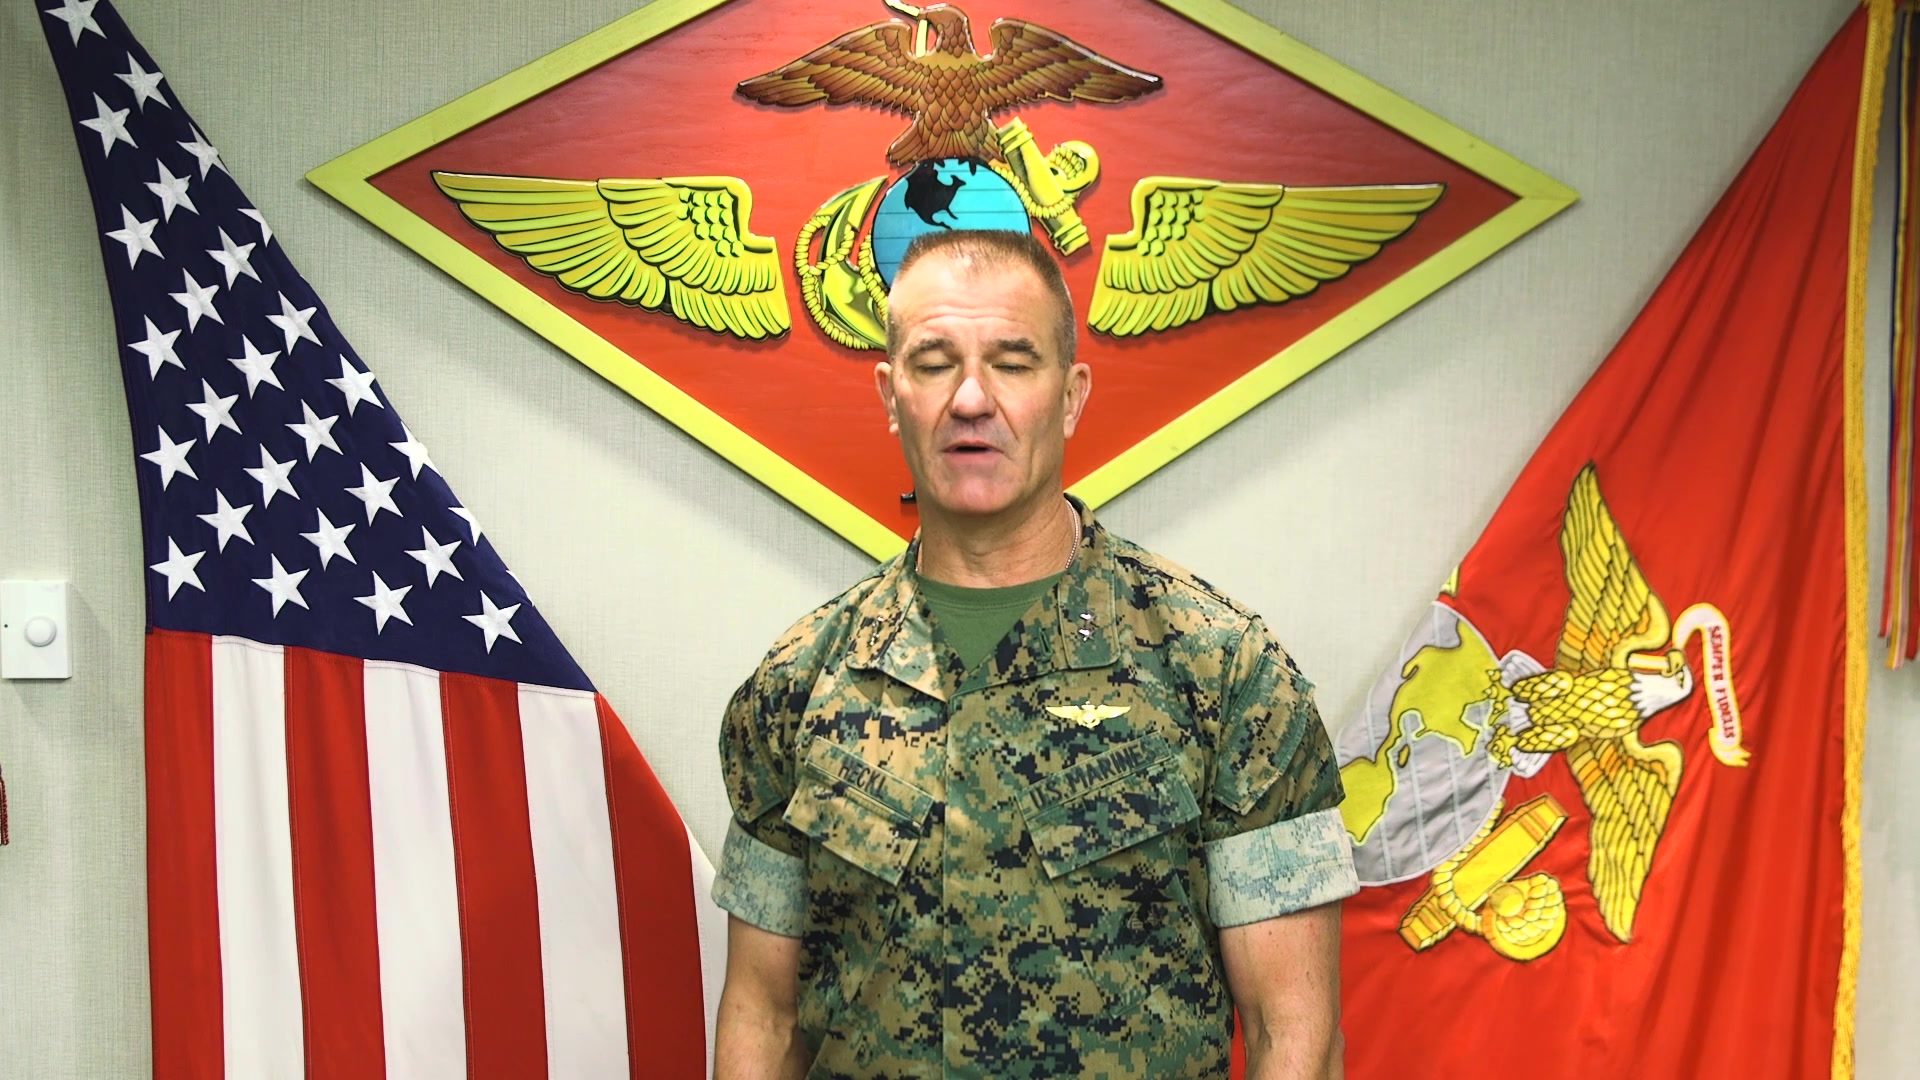 Marine Maj. Gen. Karsten S. Heckl poses for a video at Marine Corps Air Station Cherry Point, North Carolina, June 30, 2020.  Heckl addresses the Marines, Sailors and families of 2nd Marine Aircraft Wing in a final farewell before he relinquishes command to Maj. Gen Michael S. Cederholm on July 10th, 2020.  Heckl is the commanding general for 2nd MAW. (U.S. Marine Corps video by Cpl. Paige C. Stade)